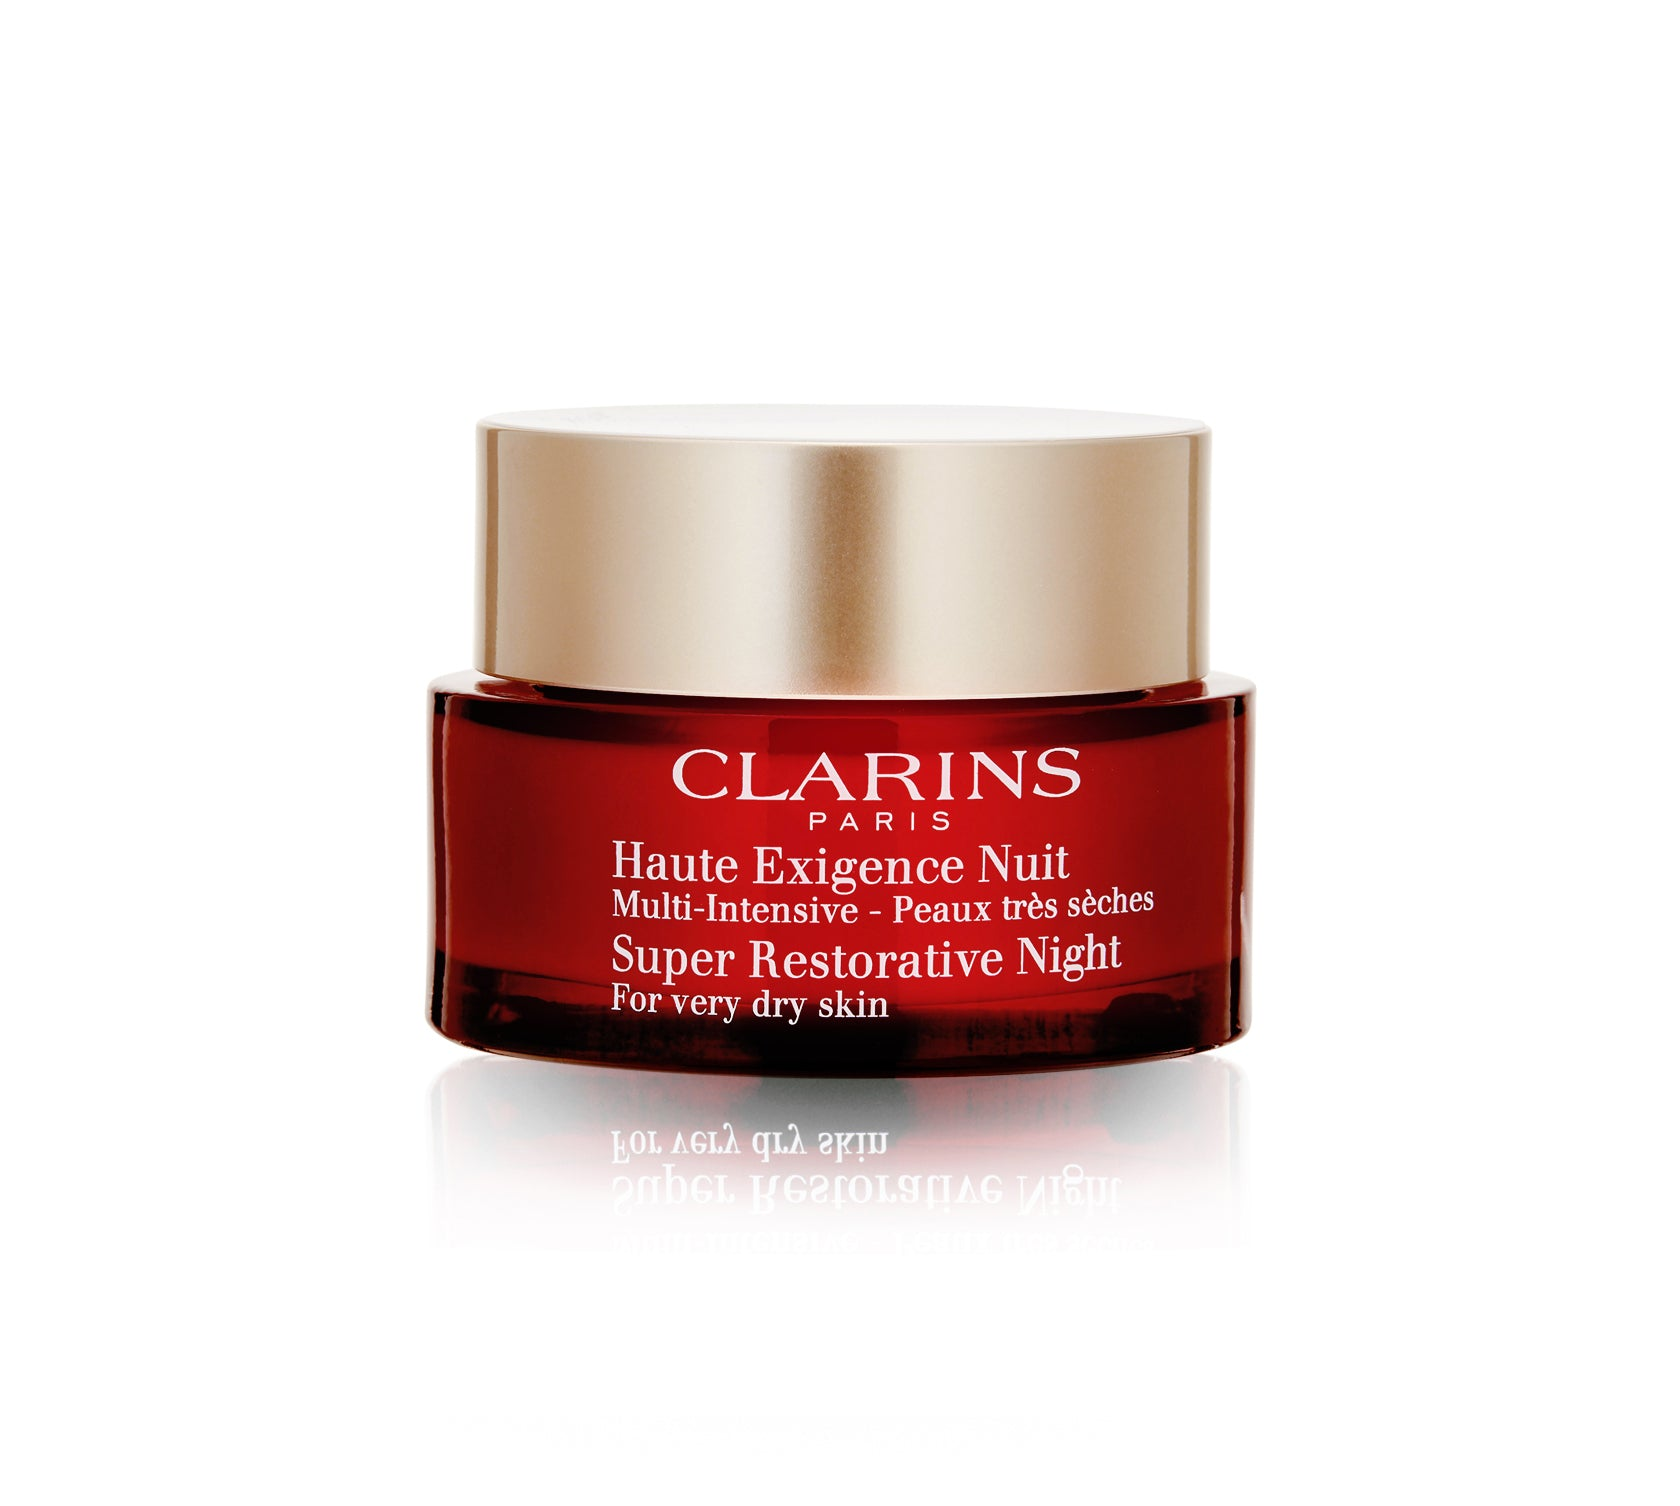 super-restorative-night-age-spot-correcting-replenishing-cream-for-very-dry-skin